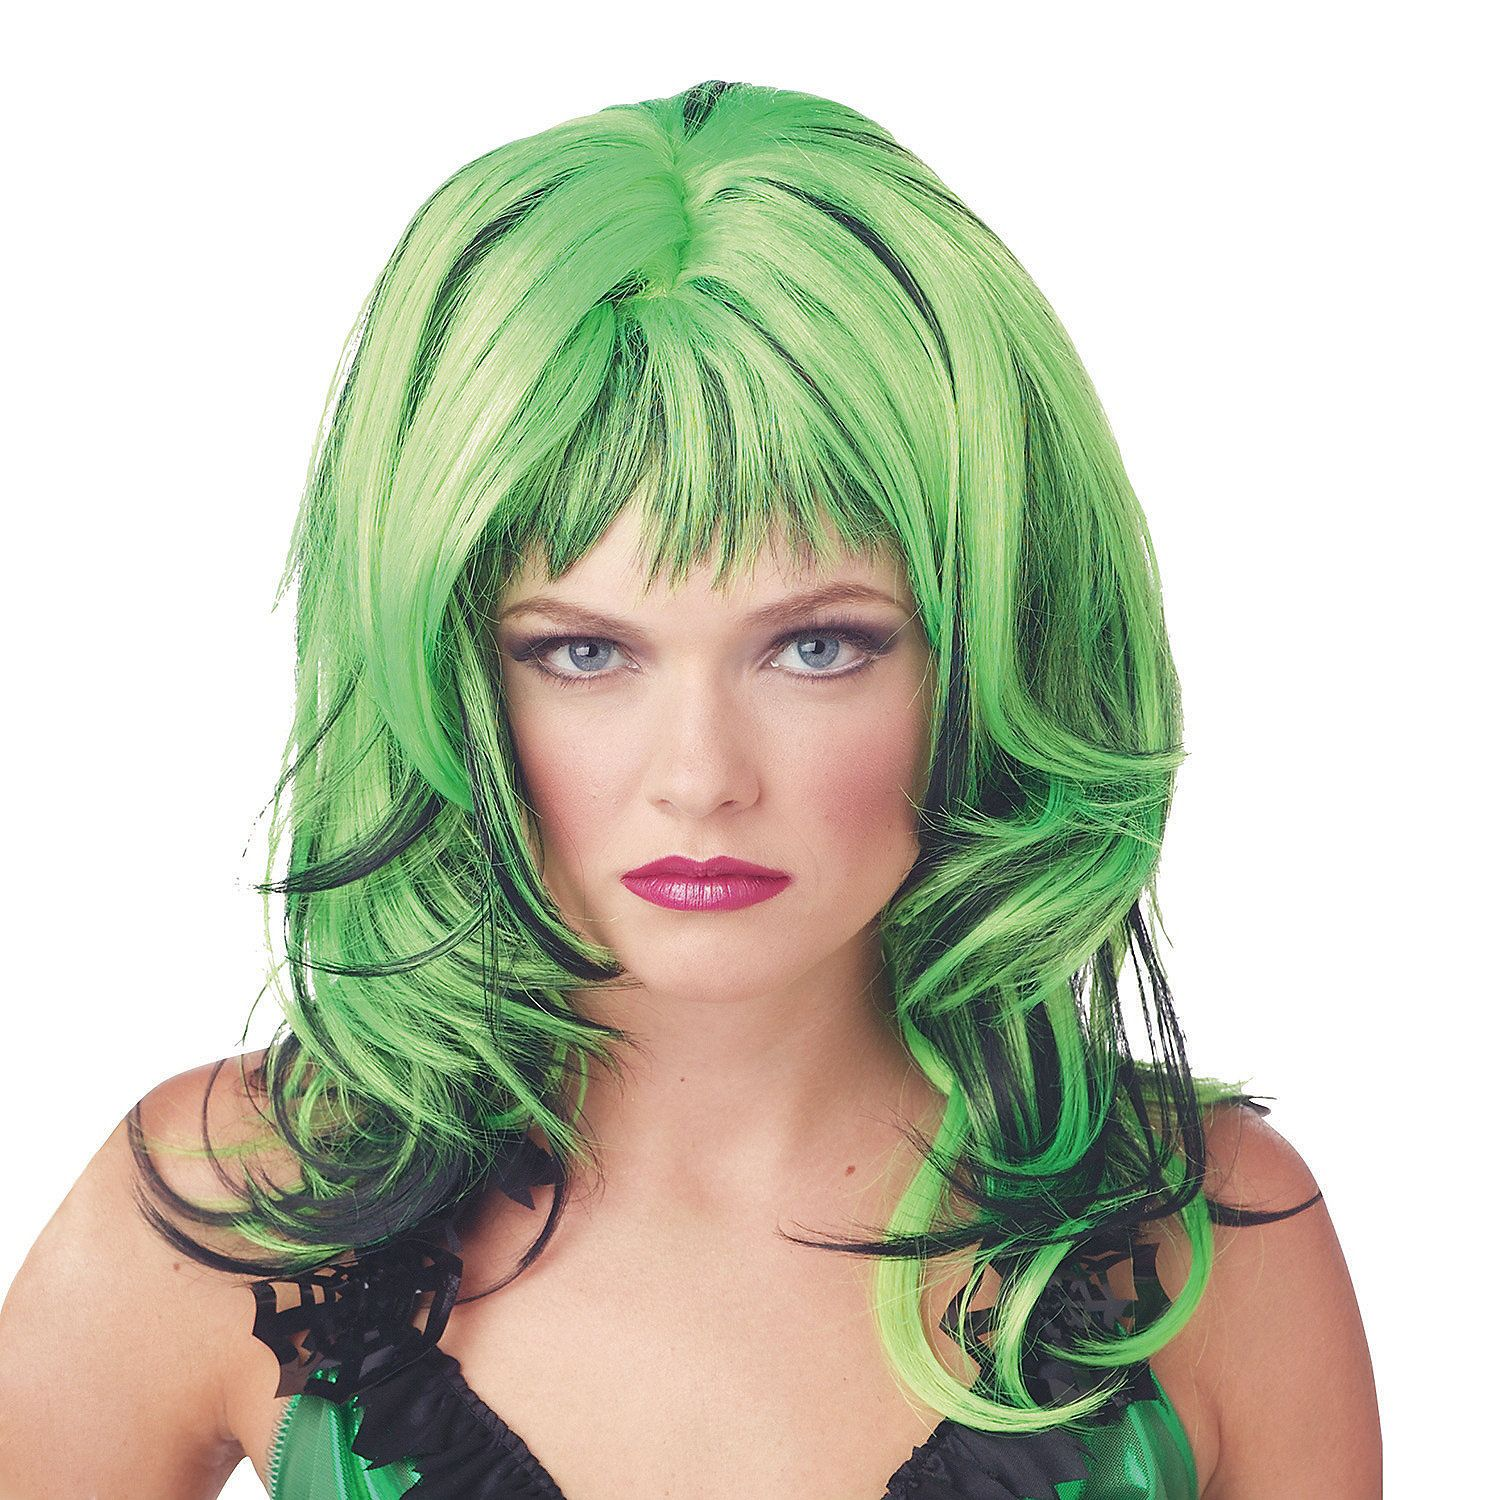 Green Wigs Lace Front Wigs Virgin Hair For Black Women Royal Blue Frontal Glueless Curly Human Hair Wigs Natural Red Hair Wig Free Shipping